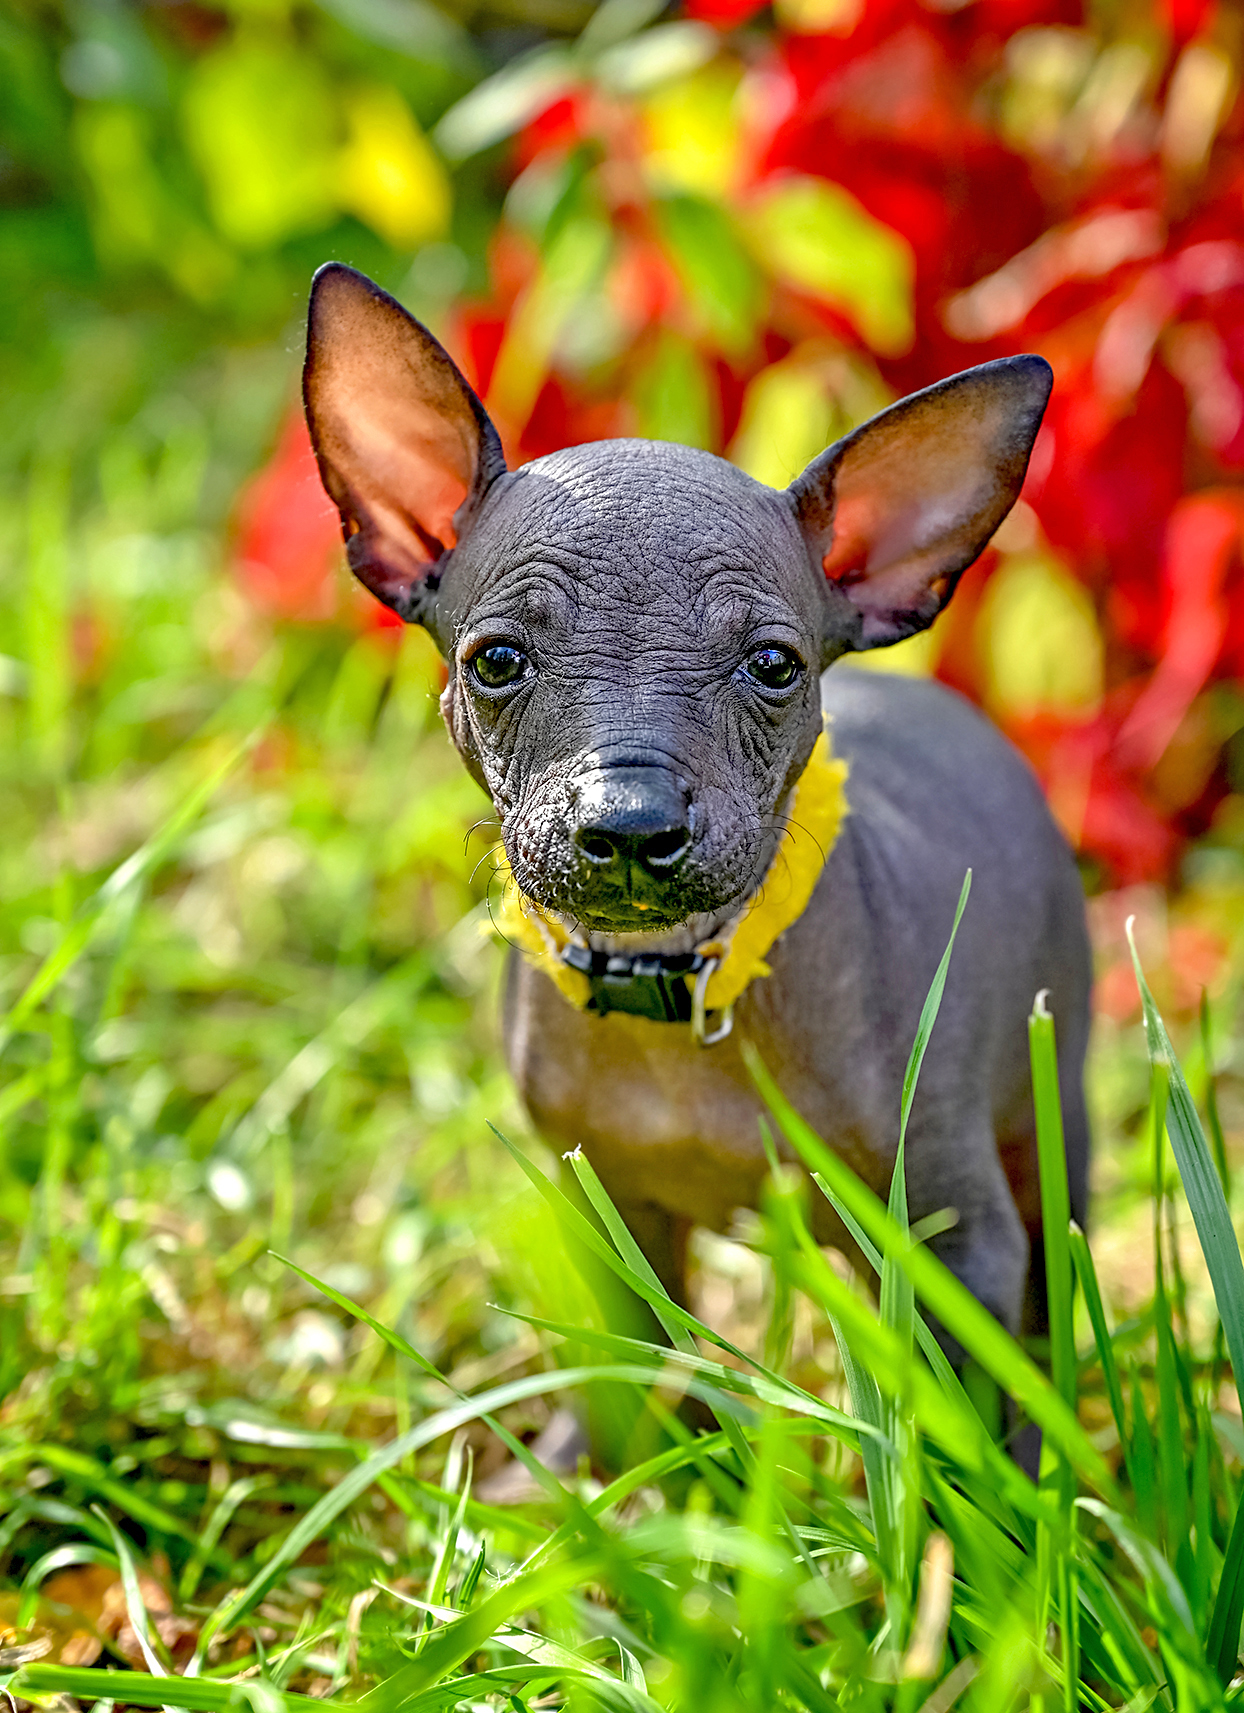 Wrinkly cute Mexican Hairless puppy stands in grass with colorful red background